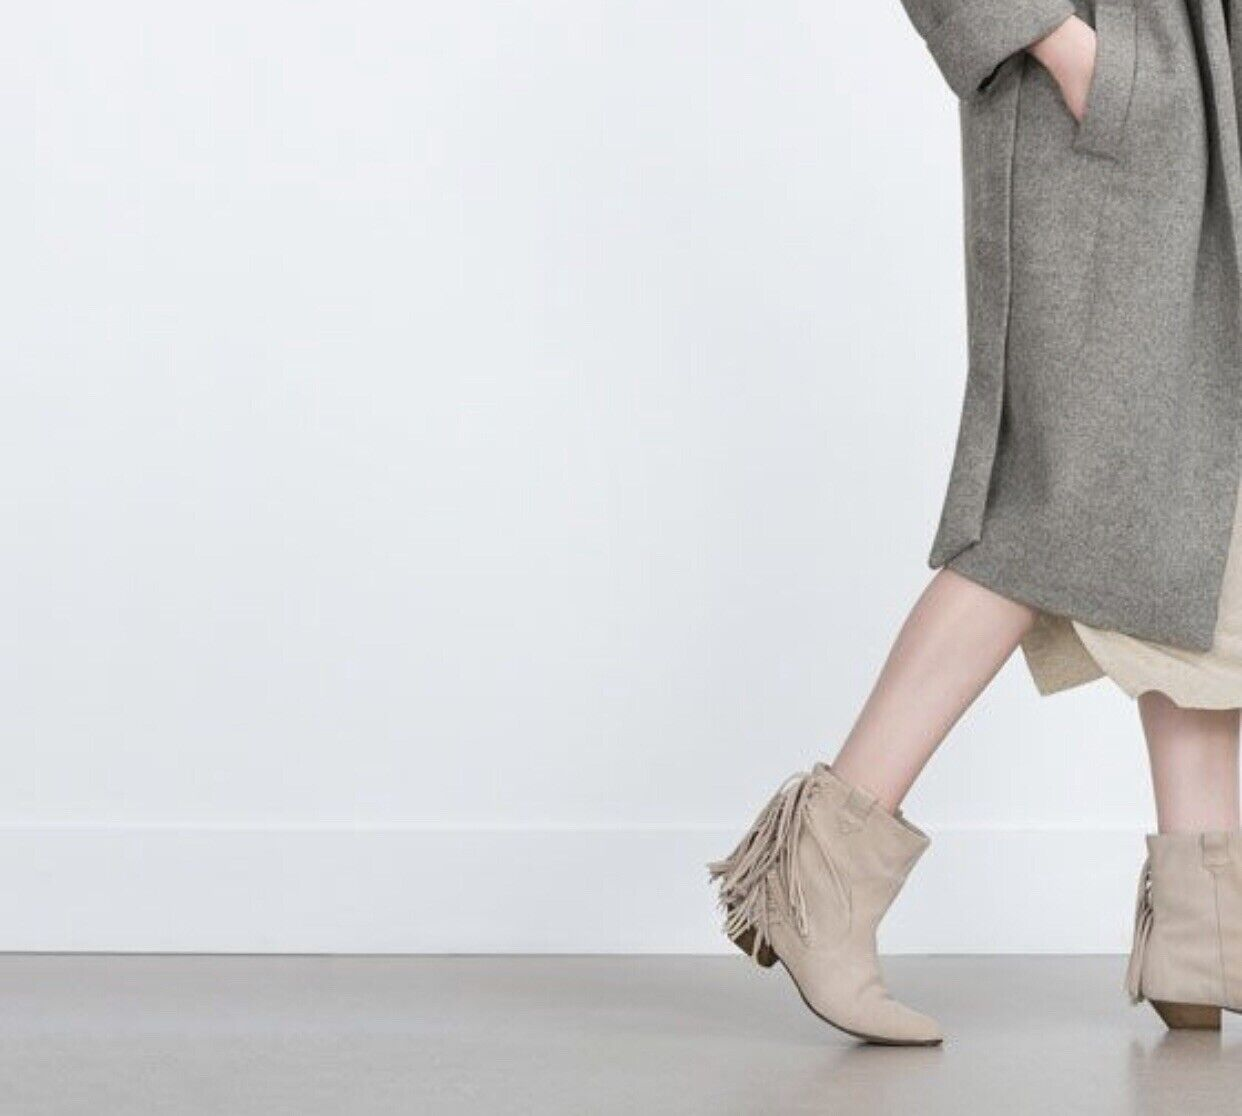 Zara Flat Ankle Boots With Fringe Size 6